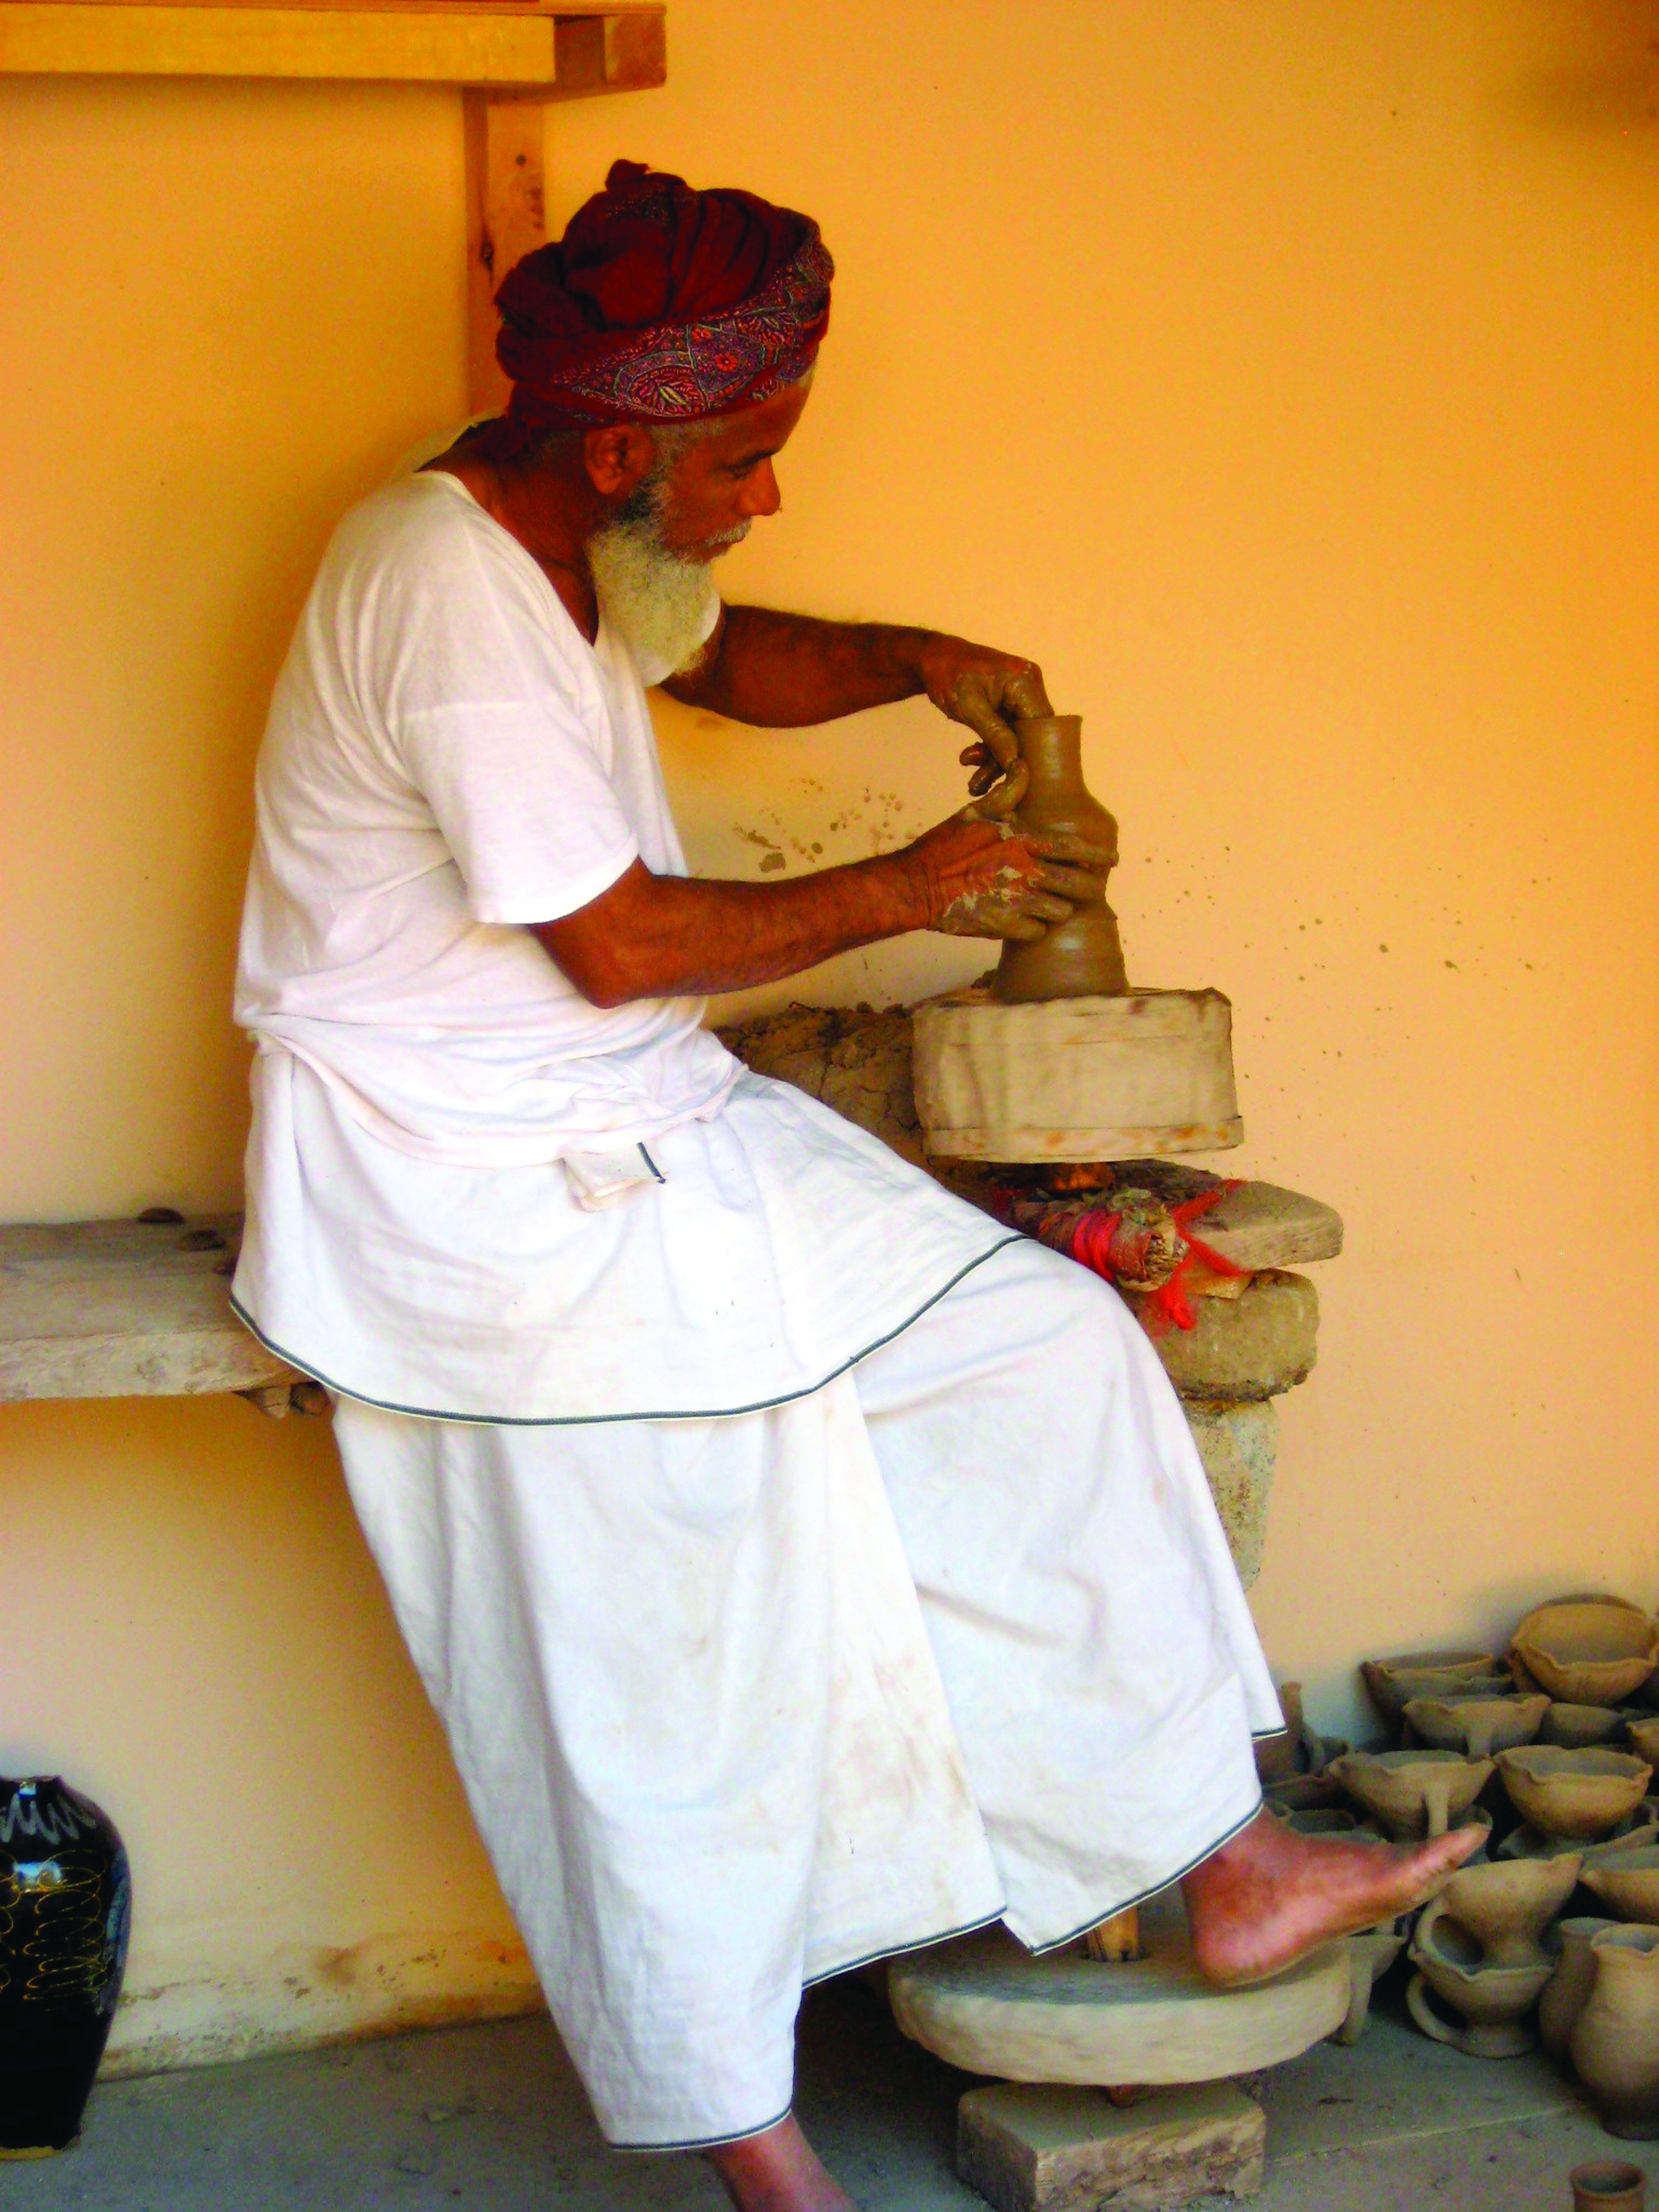 Figure 6. A potter in Muscat wearing a plain T-shirt and wizar,